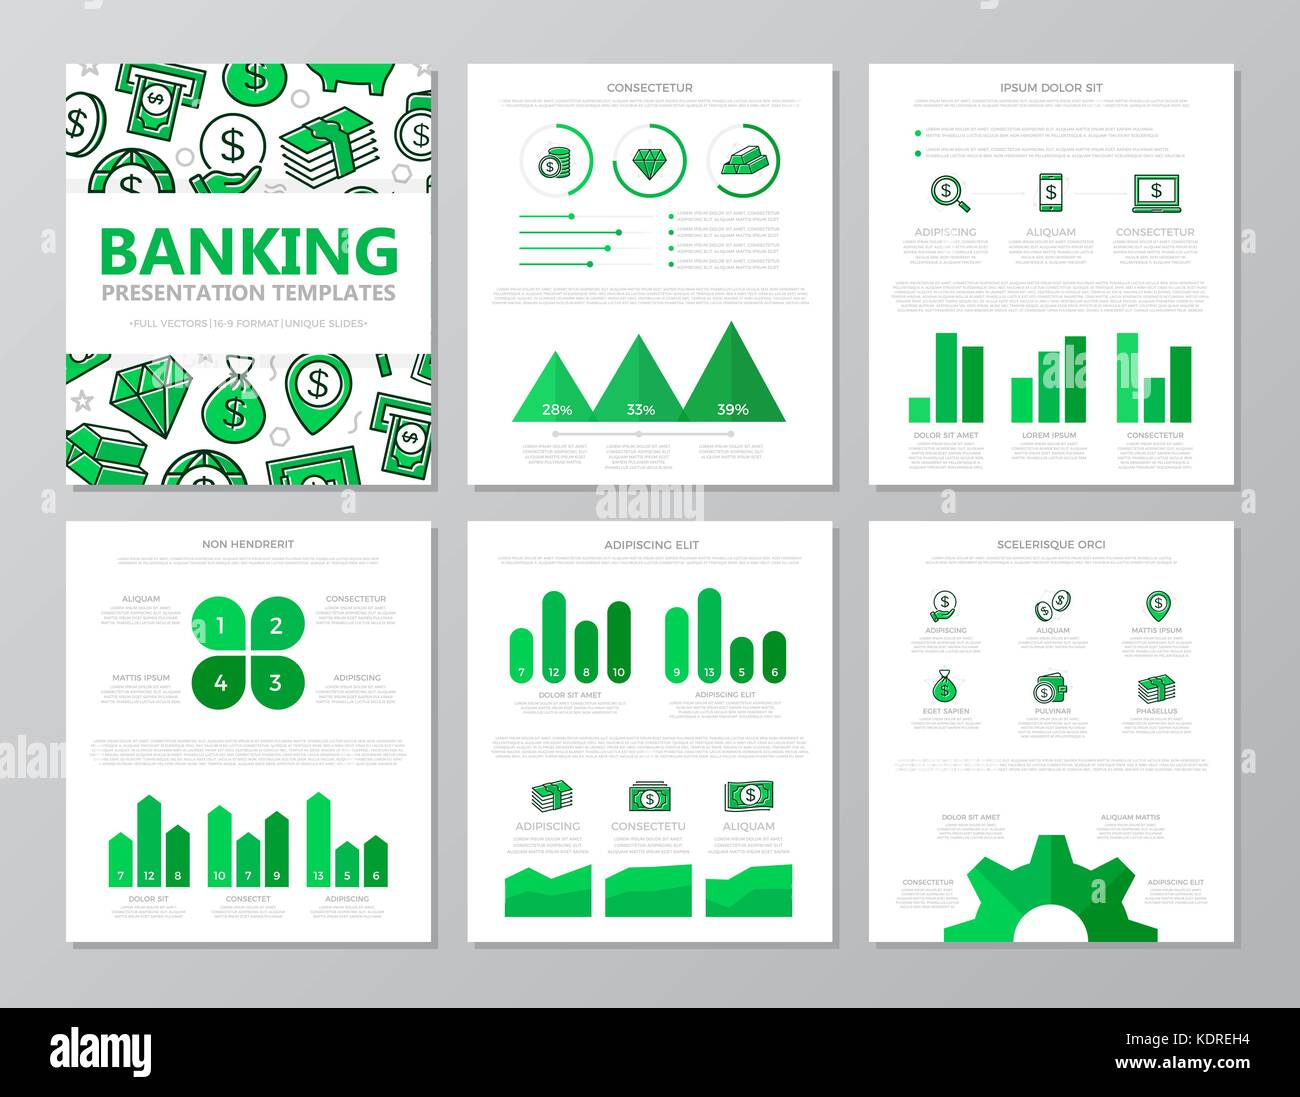 Set of colored bank and money elements for multipurpose a4 presentation template slides with graphs and charts. - Stock Image